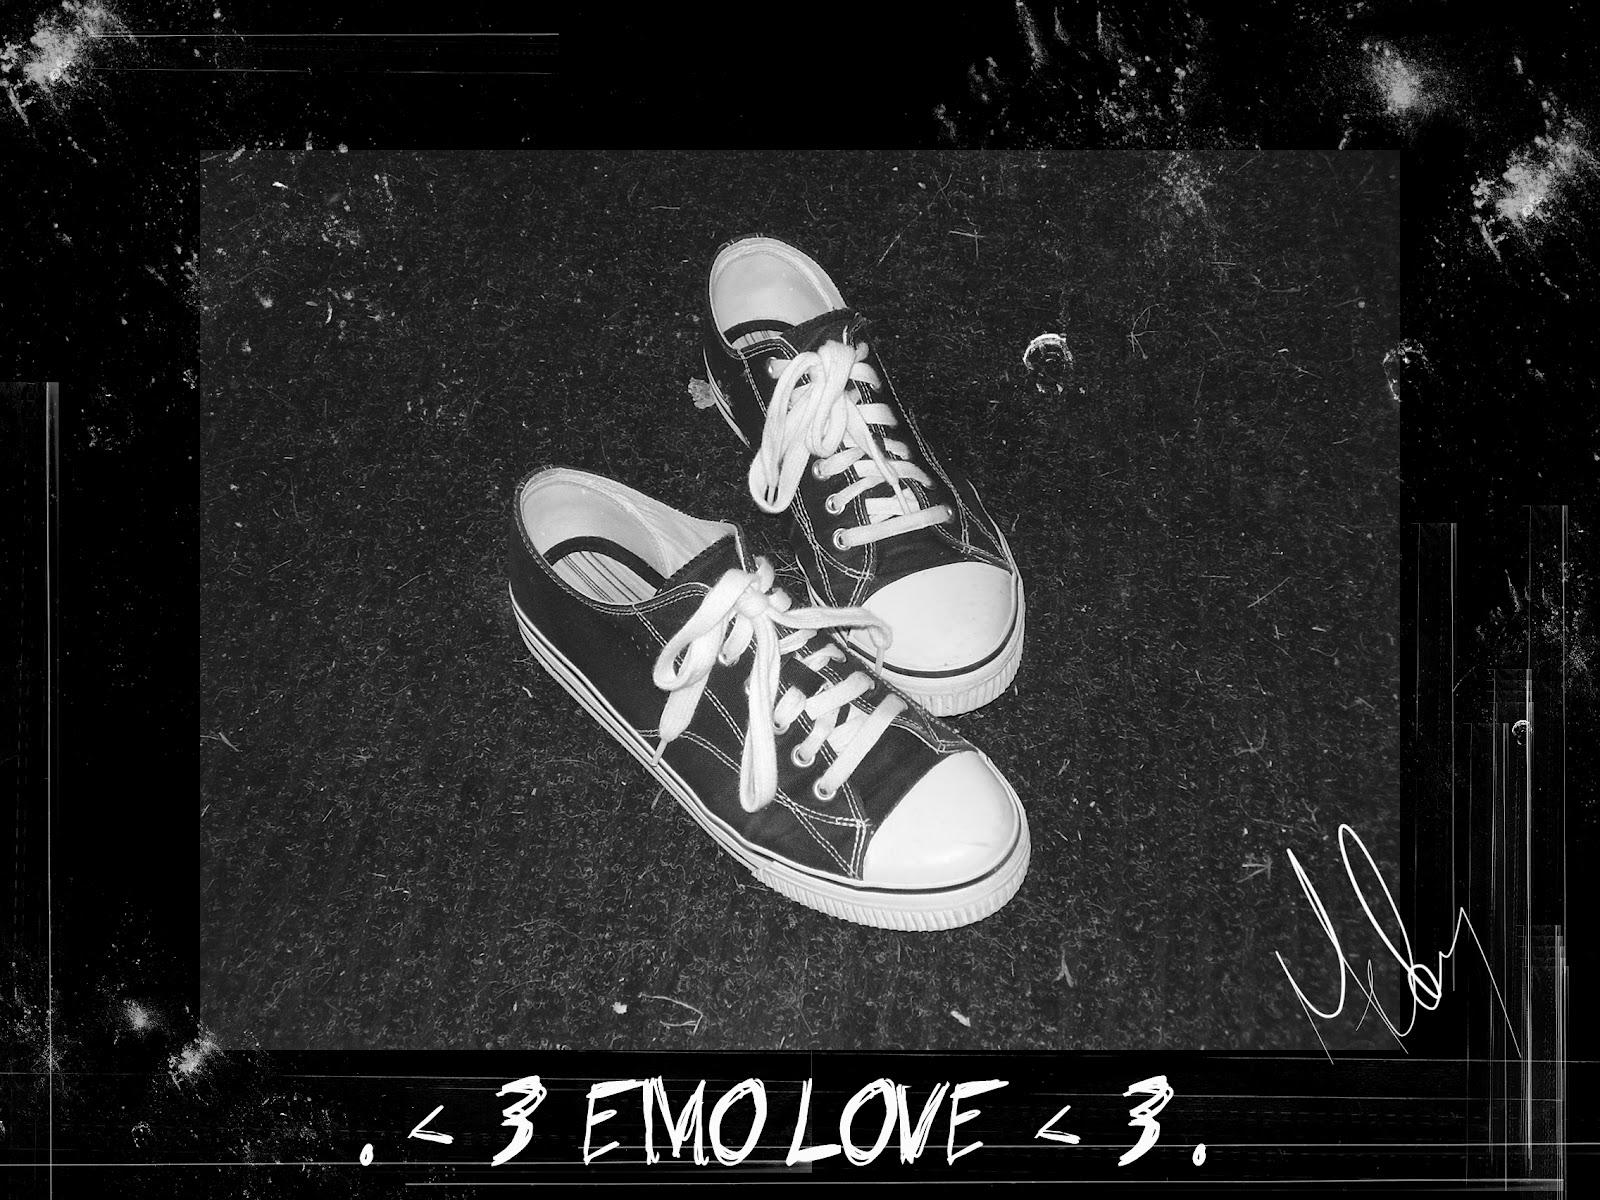 Wallpaper Keren Emo Love : emo wallpapers emo love wallpapers love emo wallpapers emo wallpapers 2012 emo pictures ...